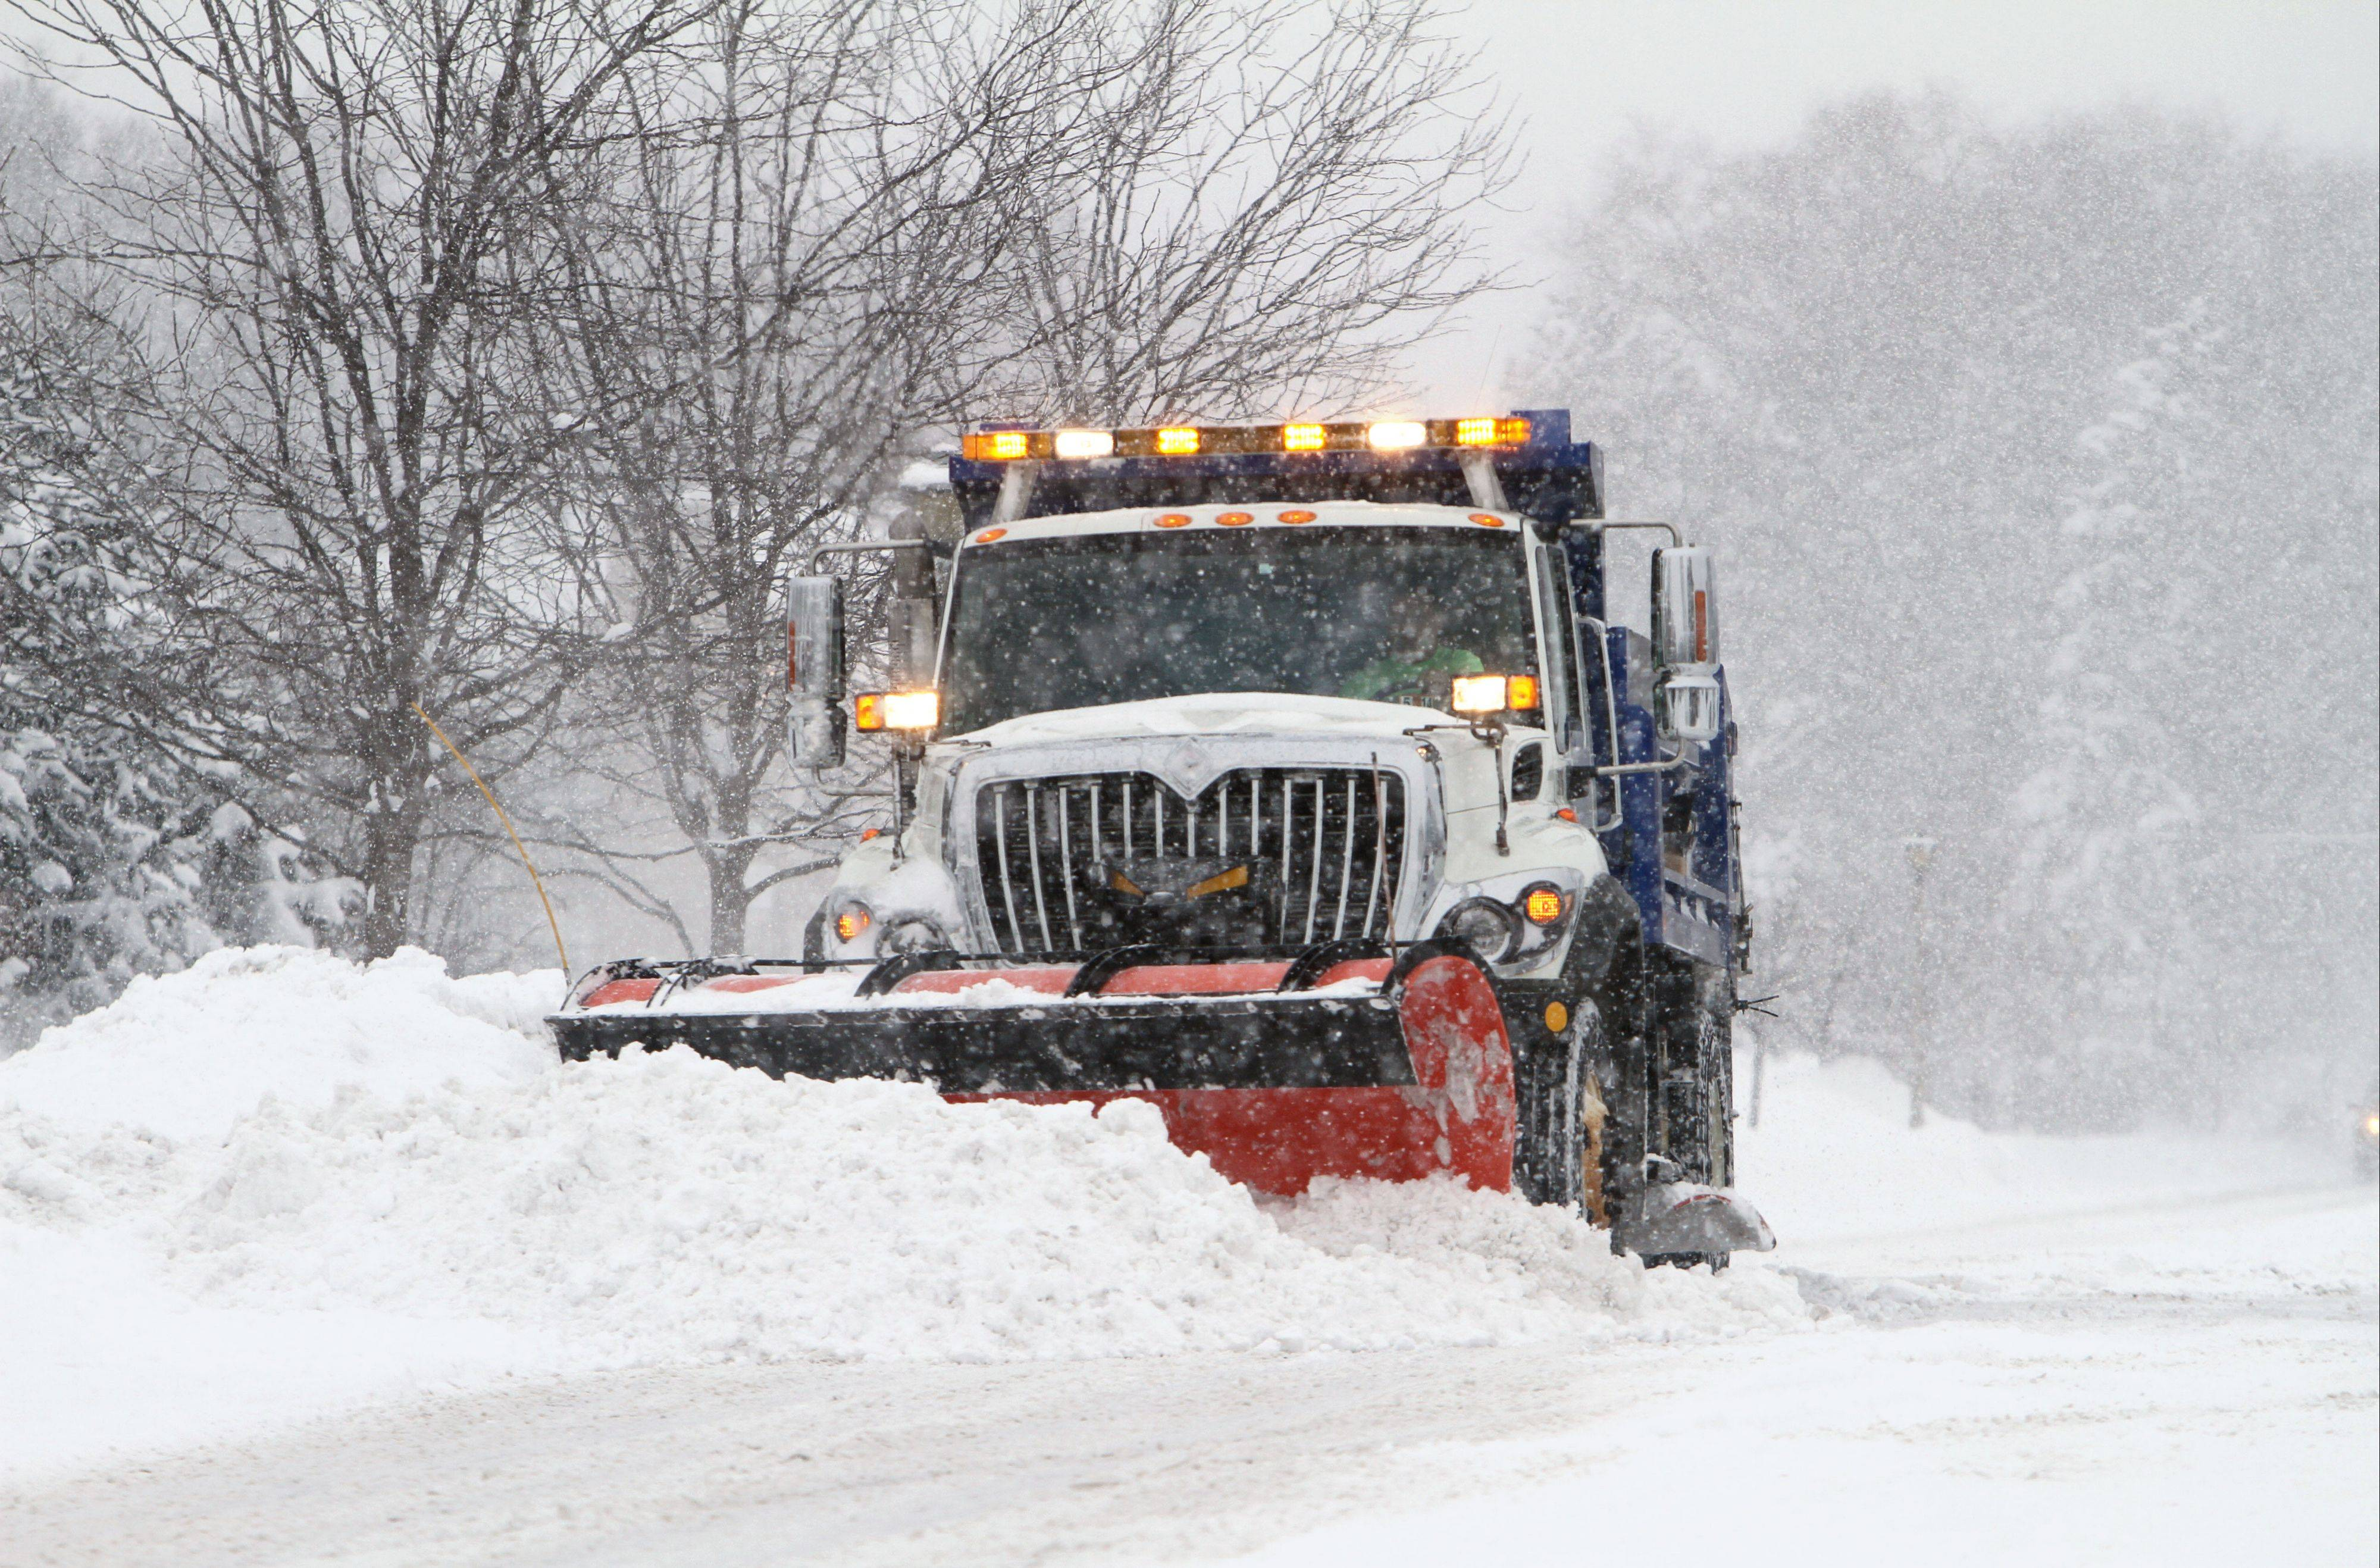 A snowplow makes its way down Garfield Avenue in Libertyville Thursday morning after a winter storm dumped over a foot of snow in the area. Several towns are feeling a budget squeeze after so much snow so early.